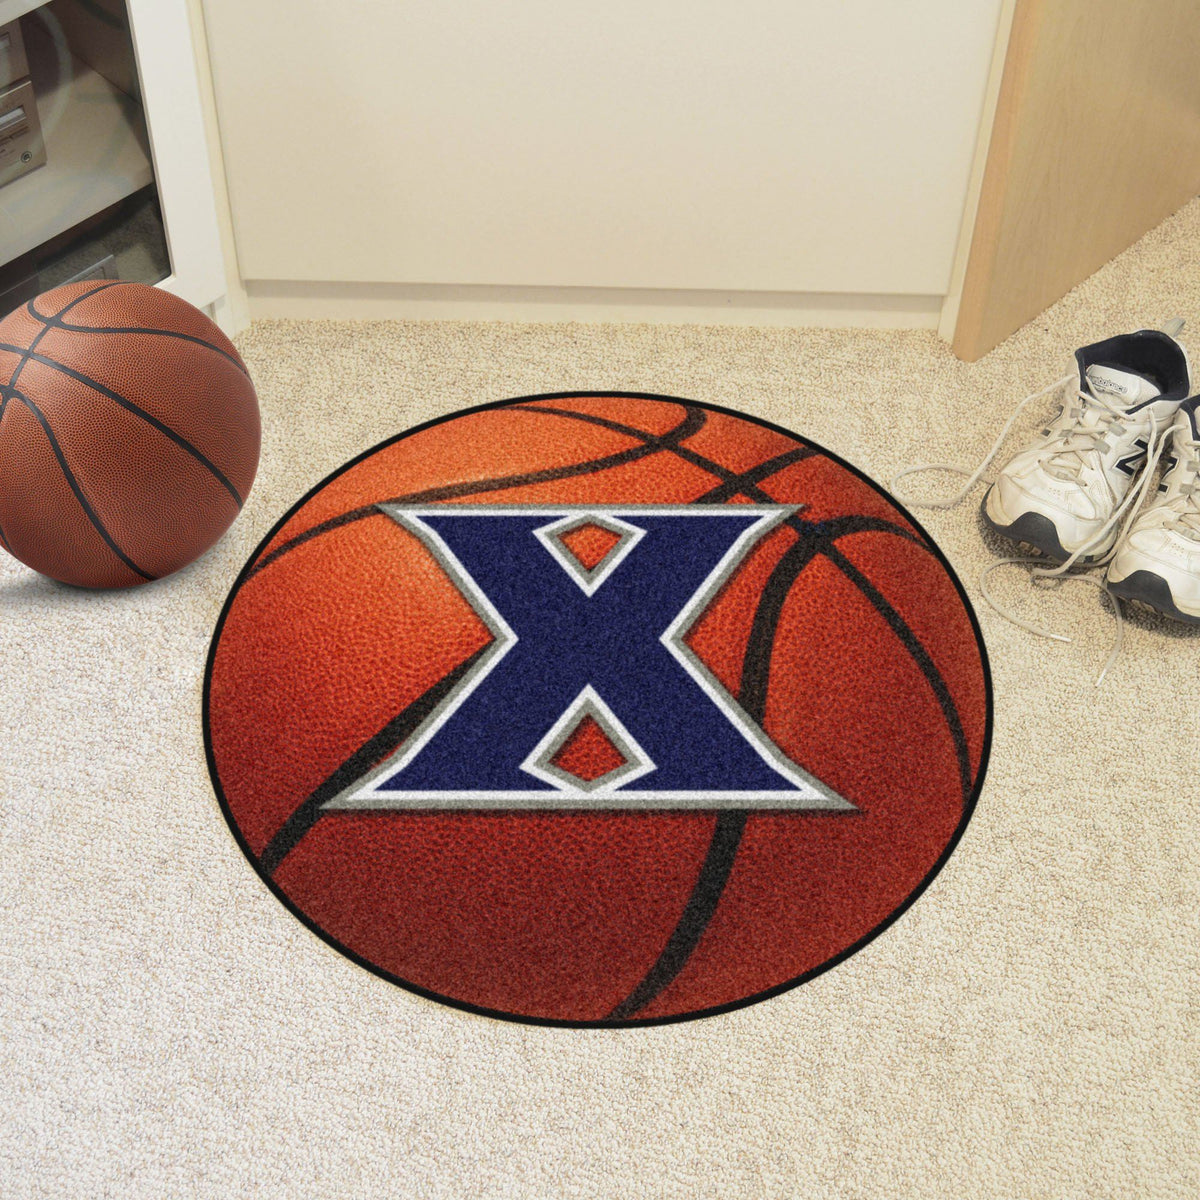 Collegiate - Basketball Mat: T - Z Collegiate Mats, Rectangular Mats, Basketball Mat, Collegiate, Home Fan Mats Xavier